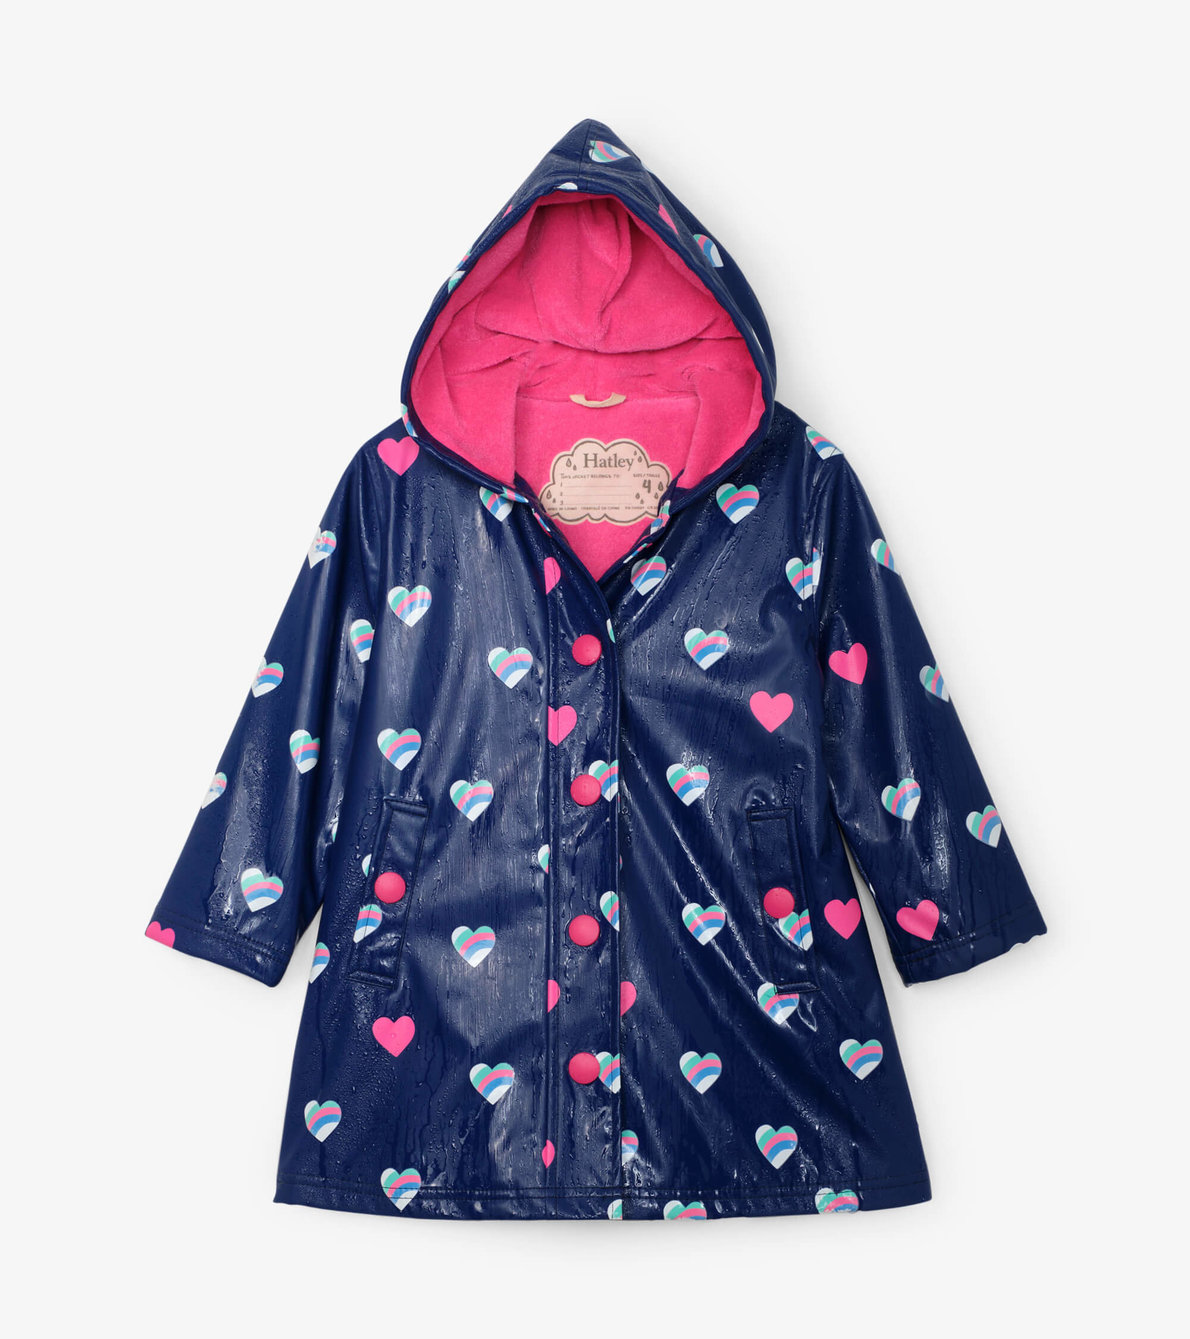 View larger image of Striped Hearts Colour Changing Splash Jacket